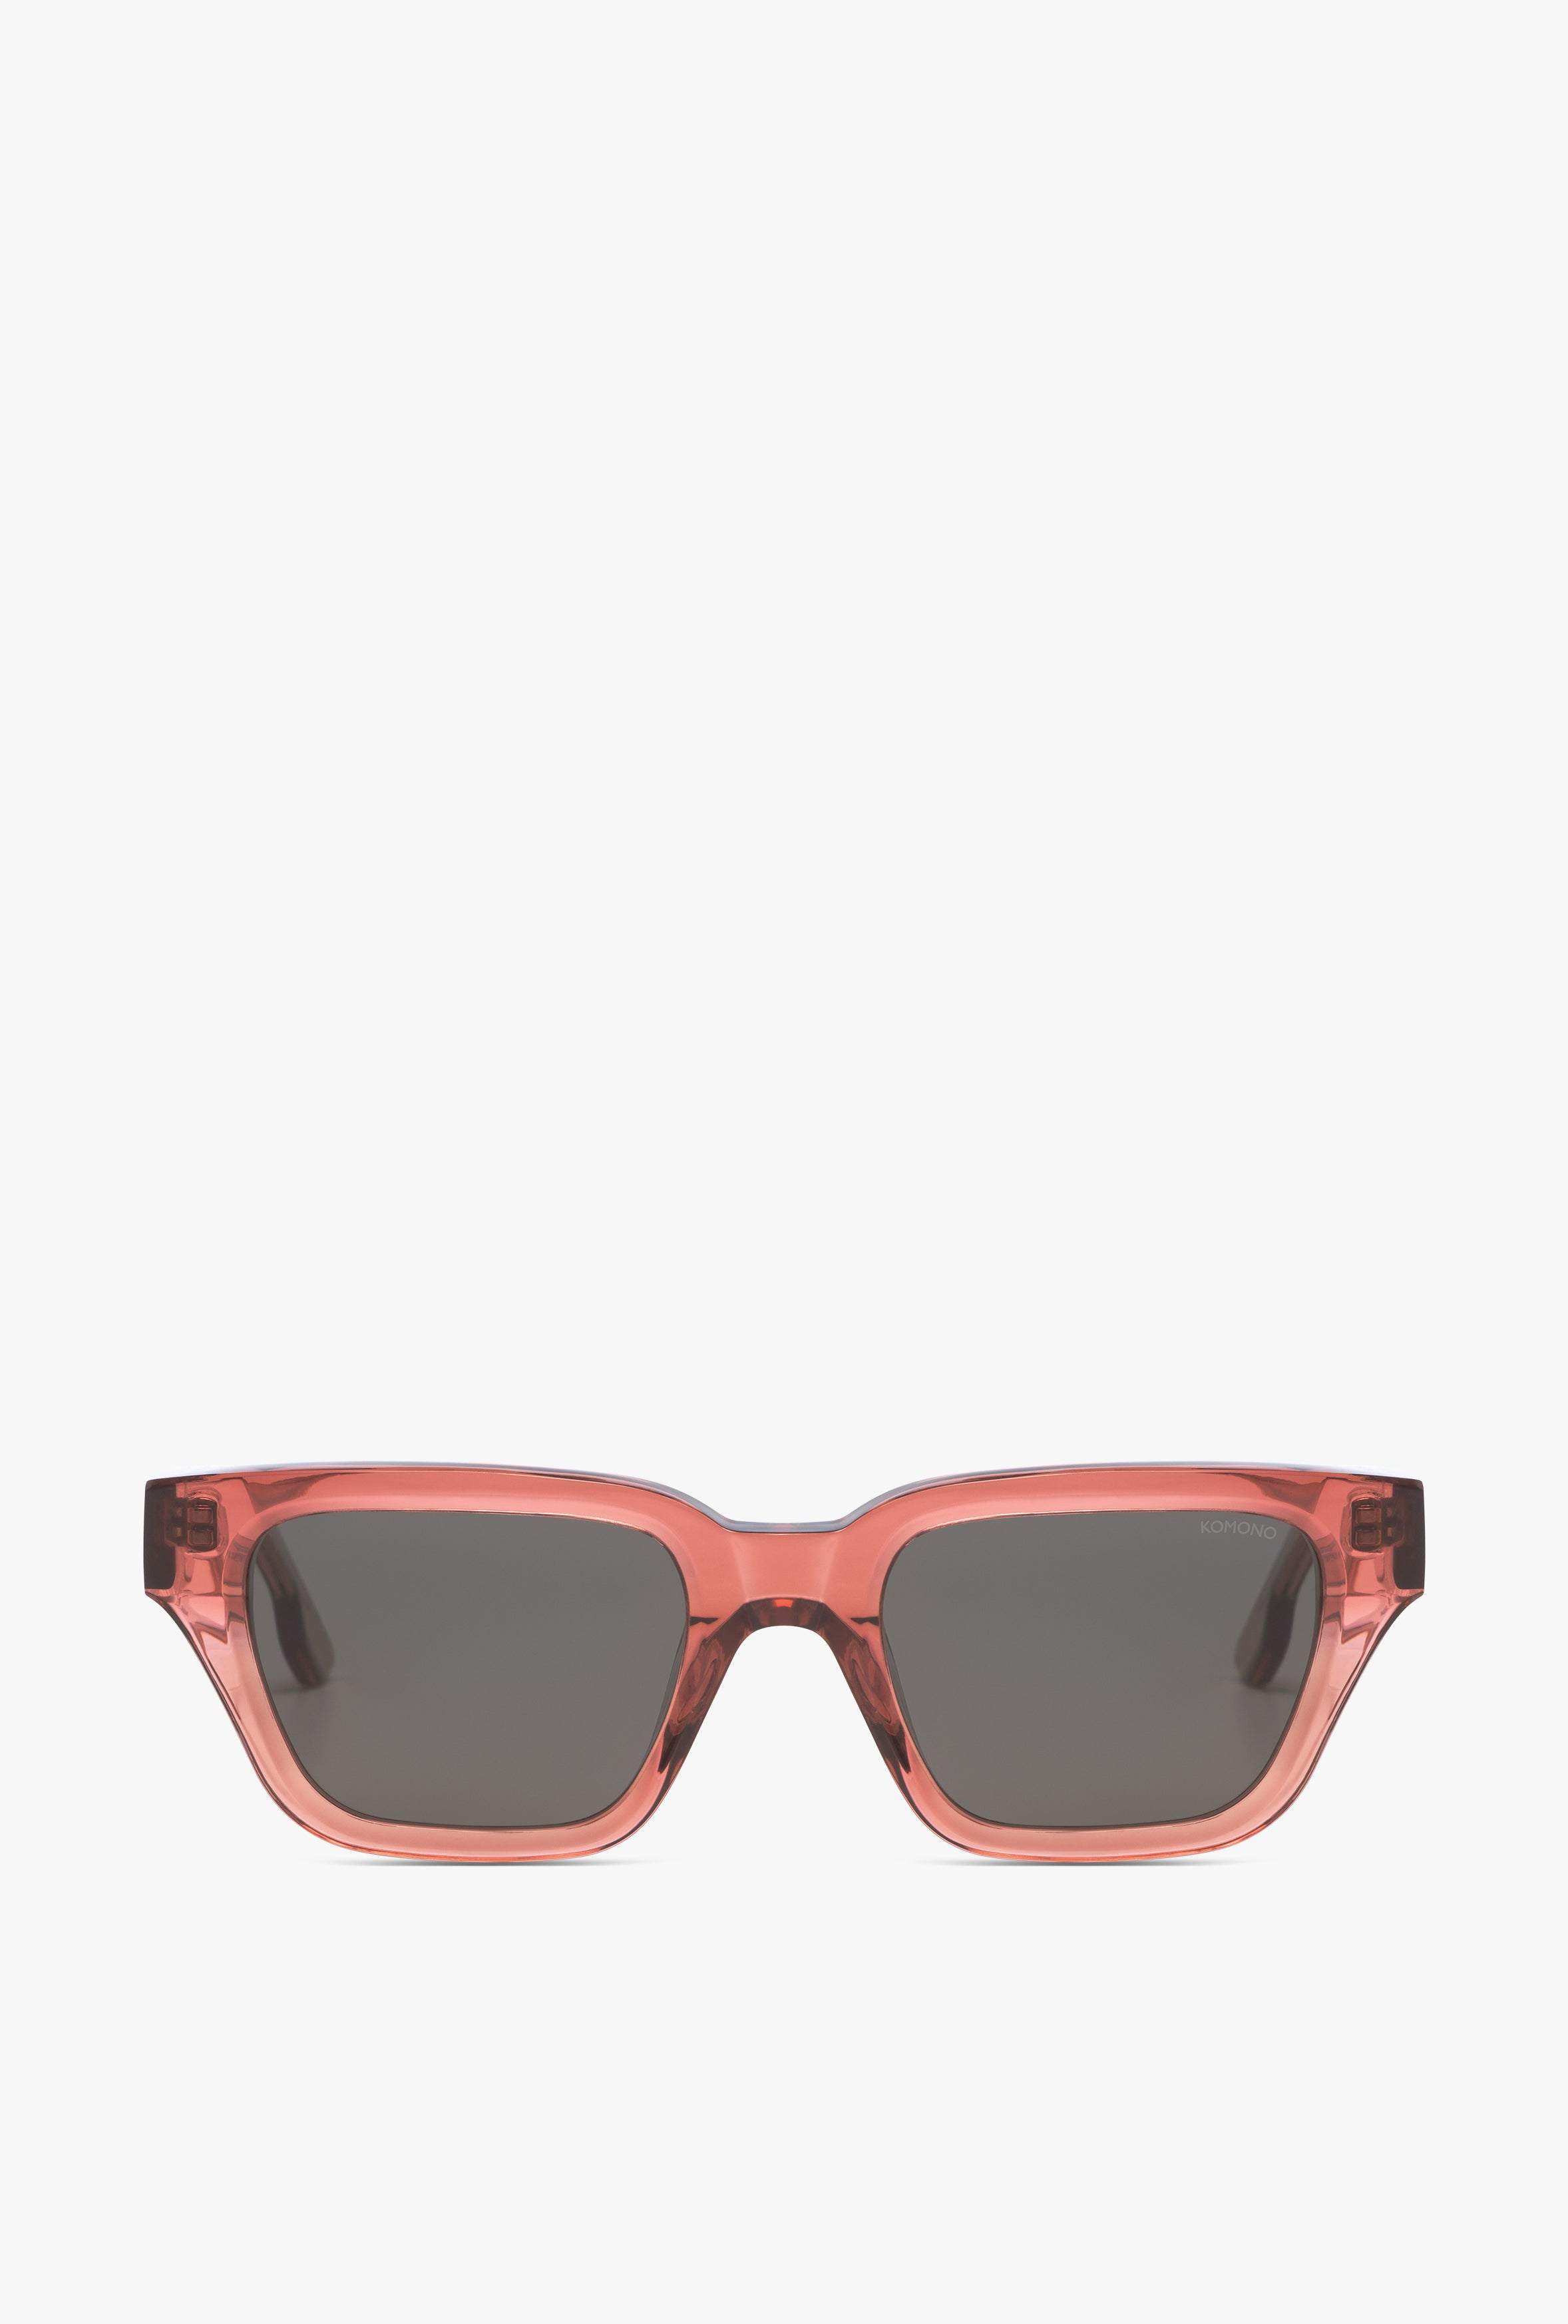 Brooklyn Sunglasses